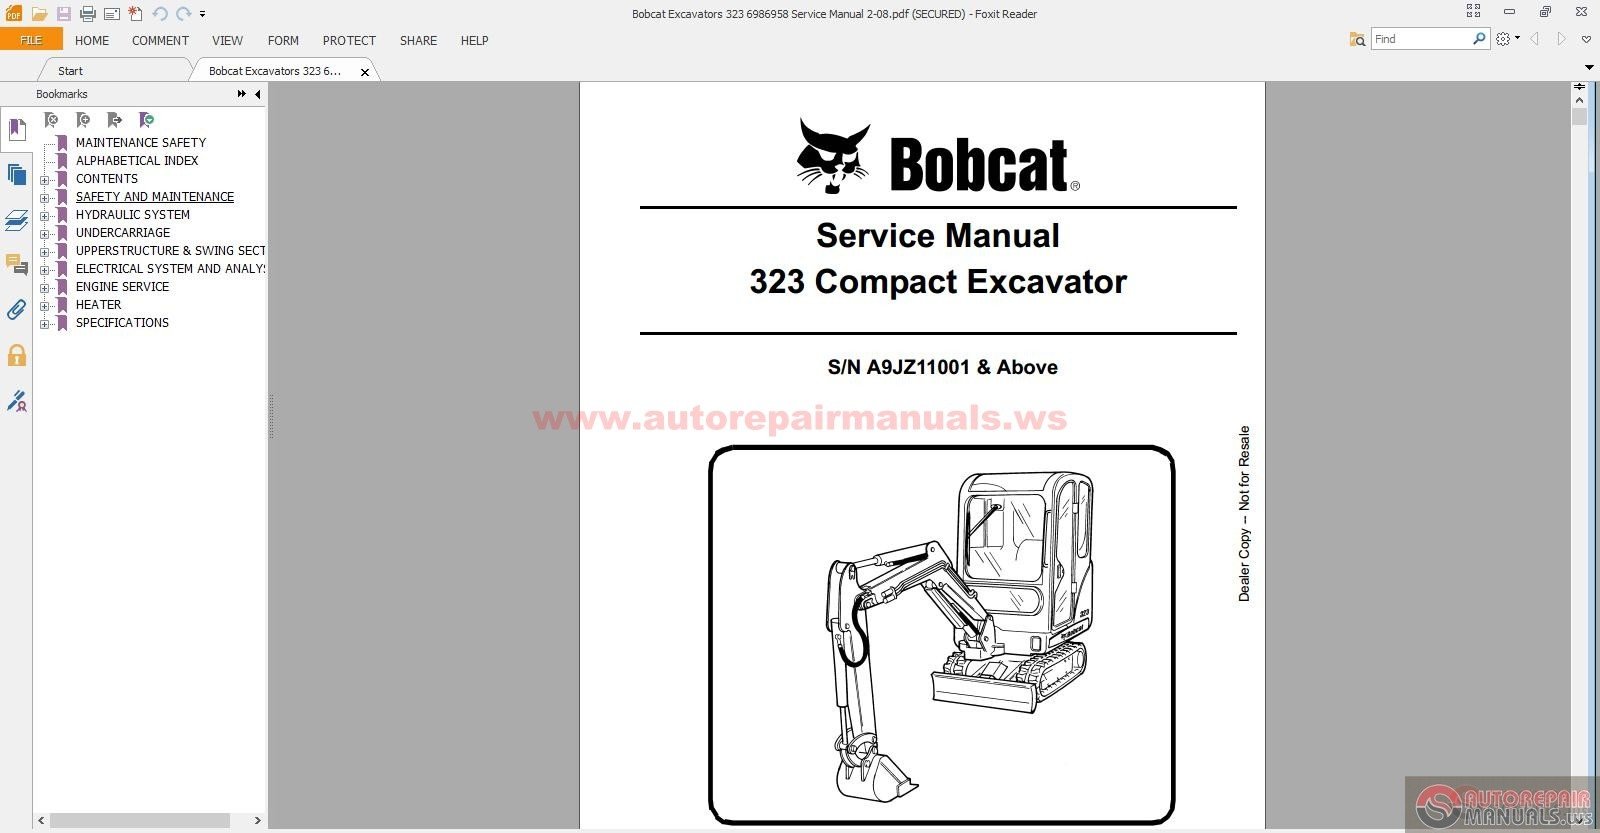 bobcat 323 wiring schematic bobcat diy wiring diagrams description bobcat excavators 323 6986958 service manual 2 08 size 31 8mb language english type pdf pages 643 bobcat wiring schematic